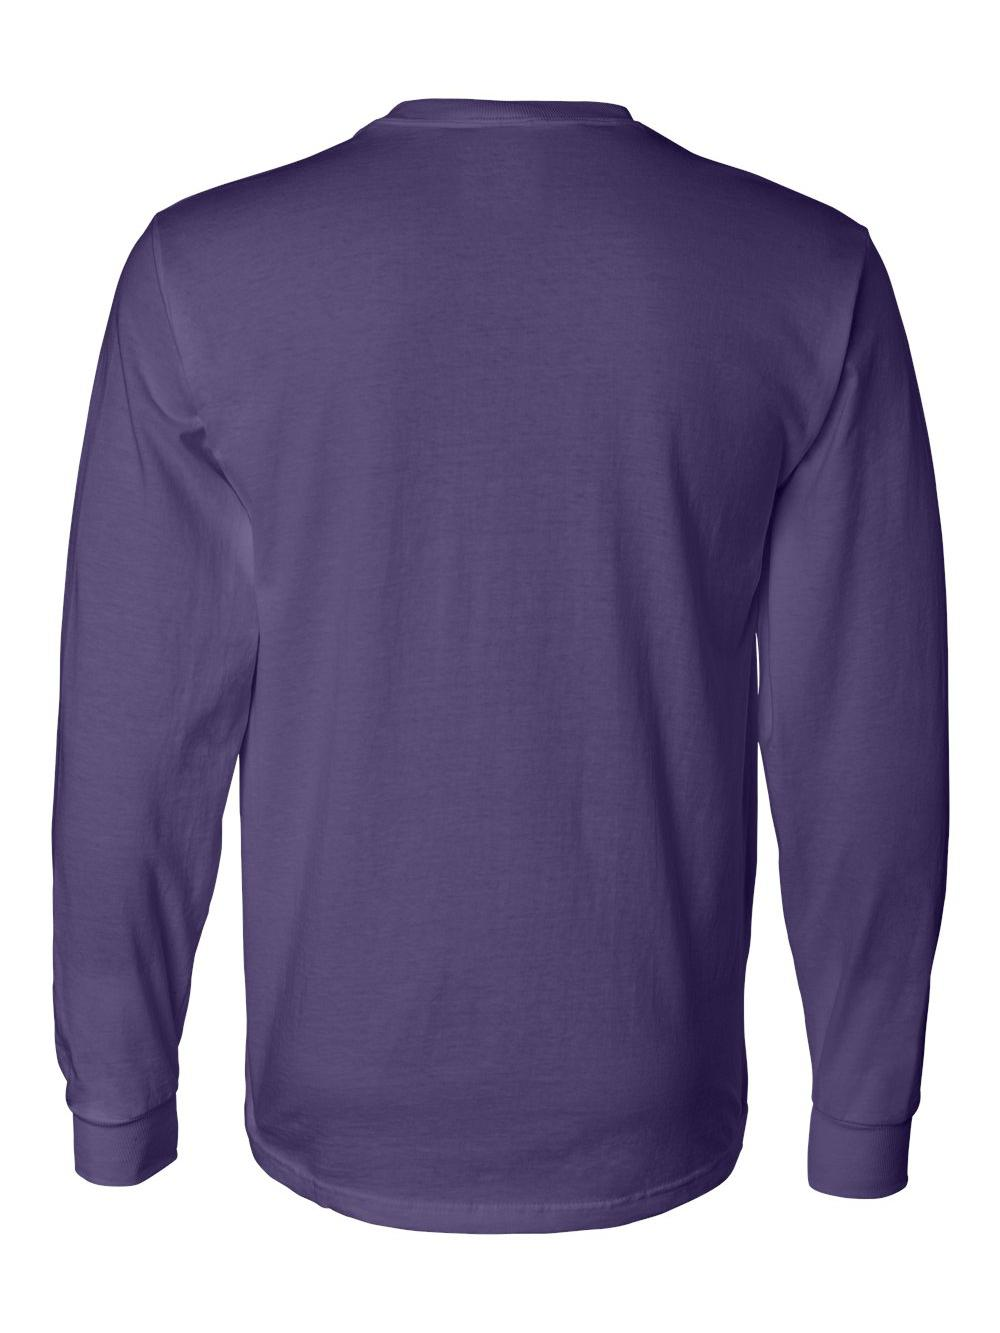 Fruit-of-the-Loom-HD-Cotton-Long-Sleeve-T-Shirt-4930R thumbnail 58